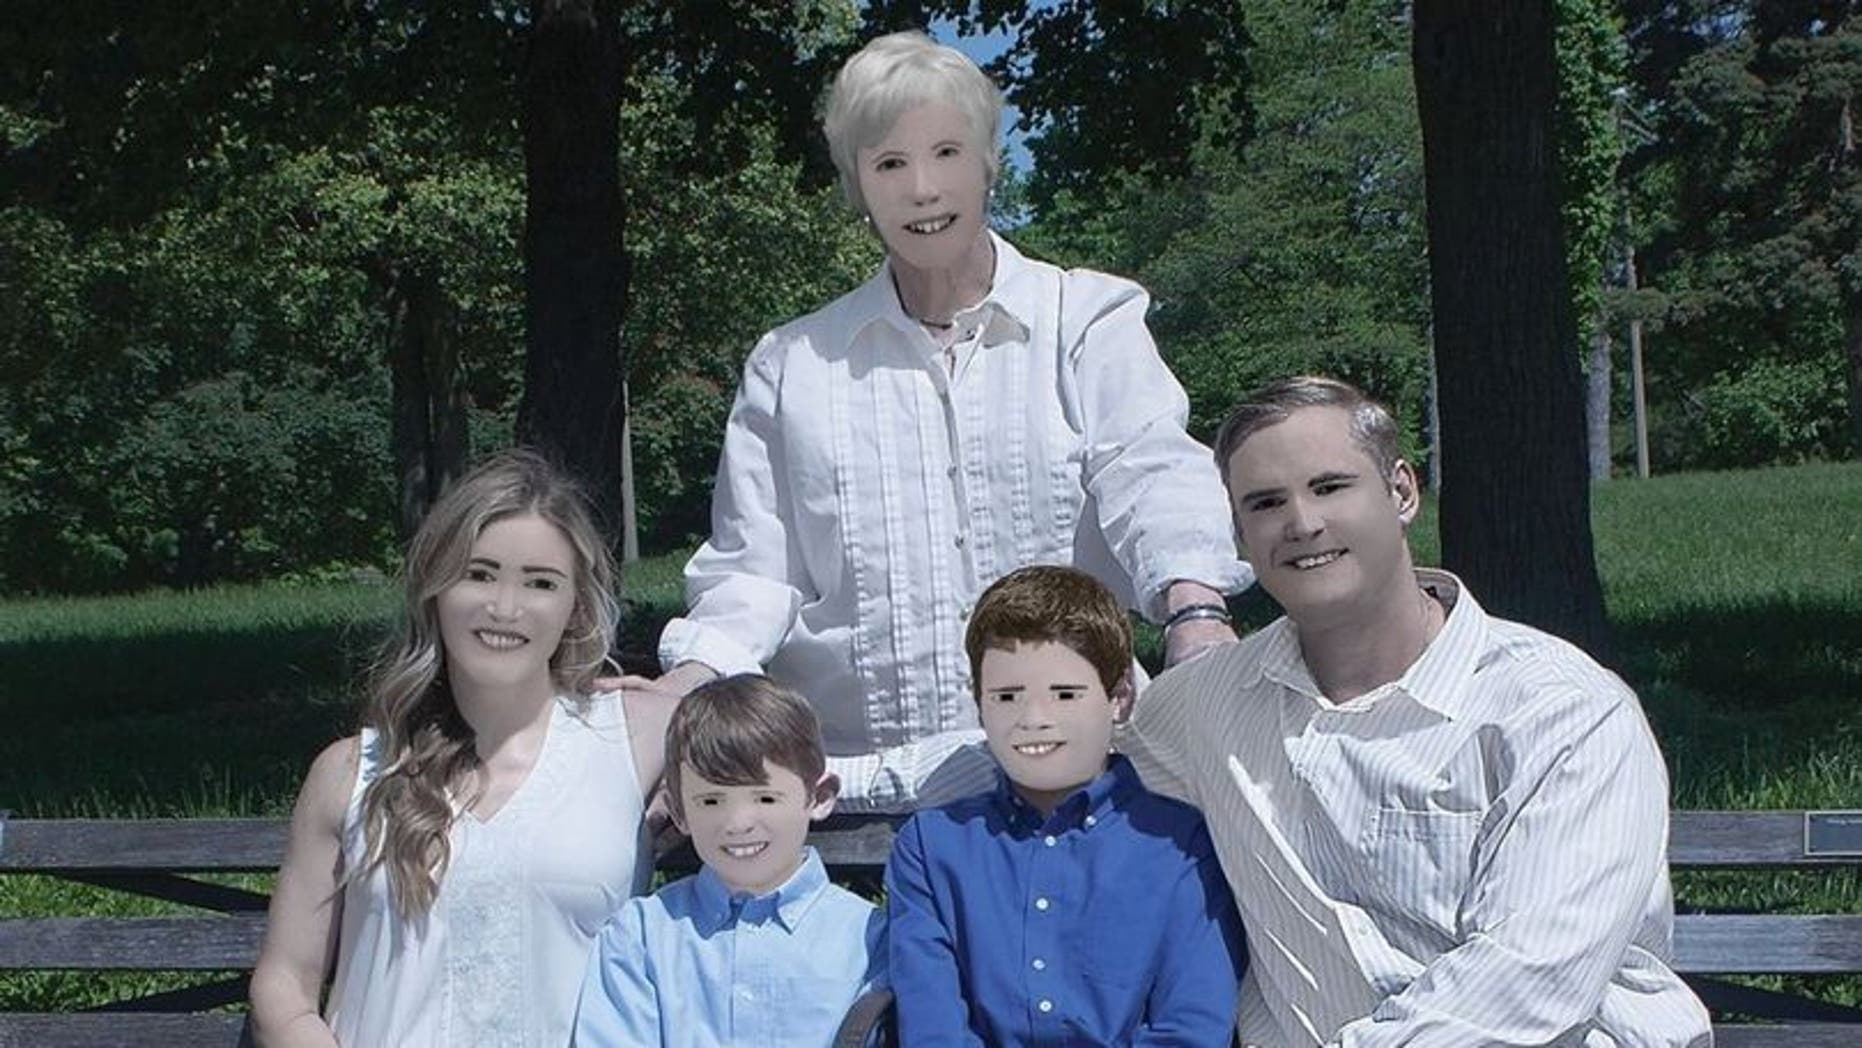 One family photo shoot is going viral after a 'professional' photographer got carried away with the airbrushing.